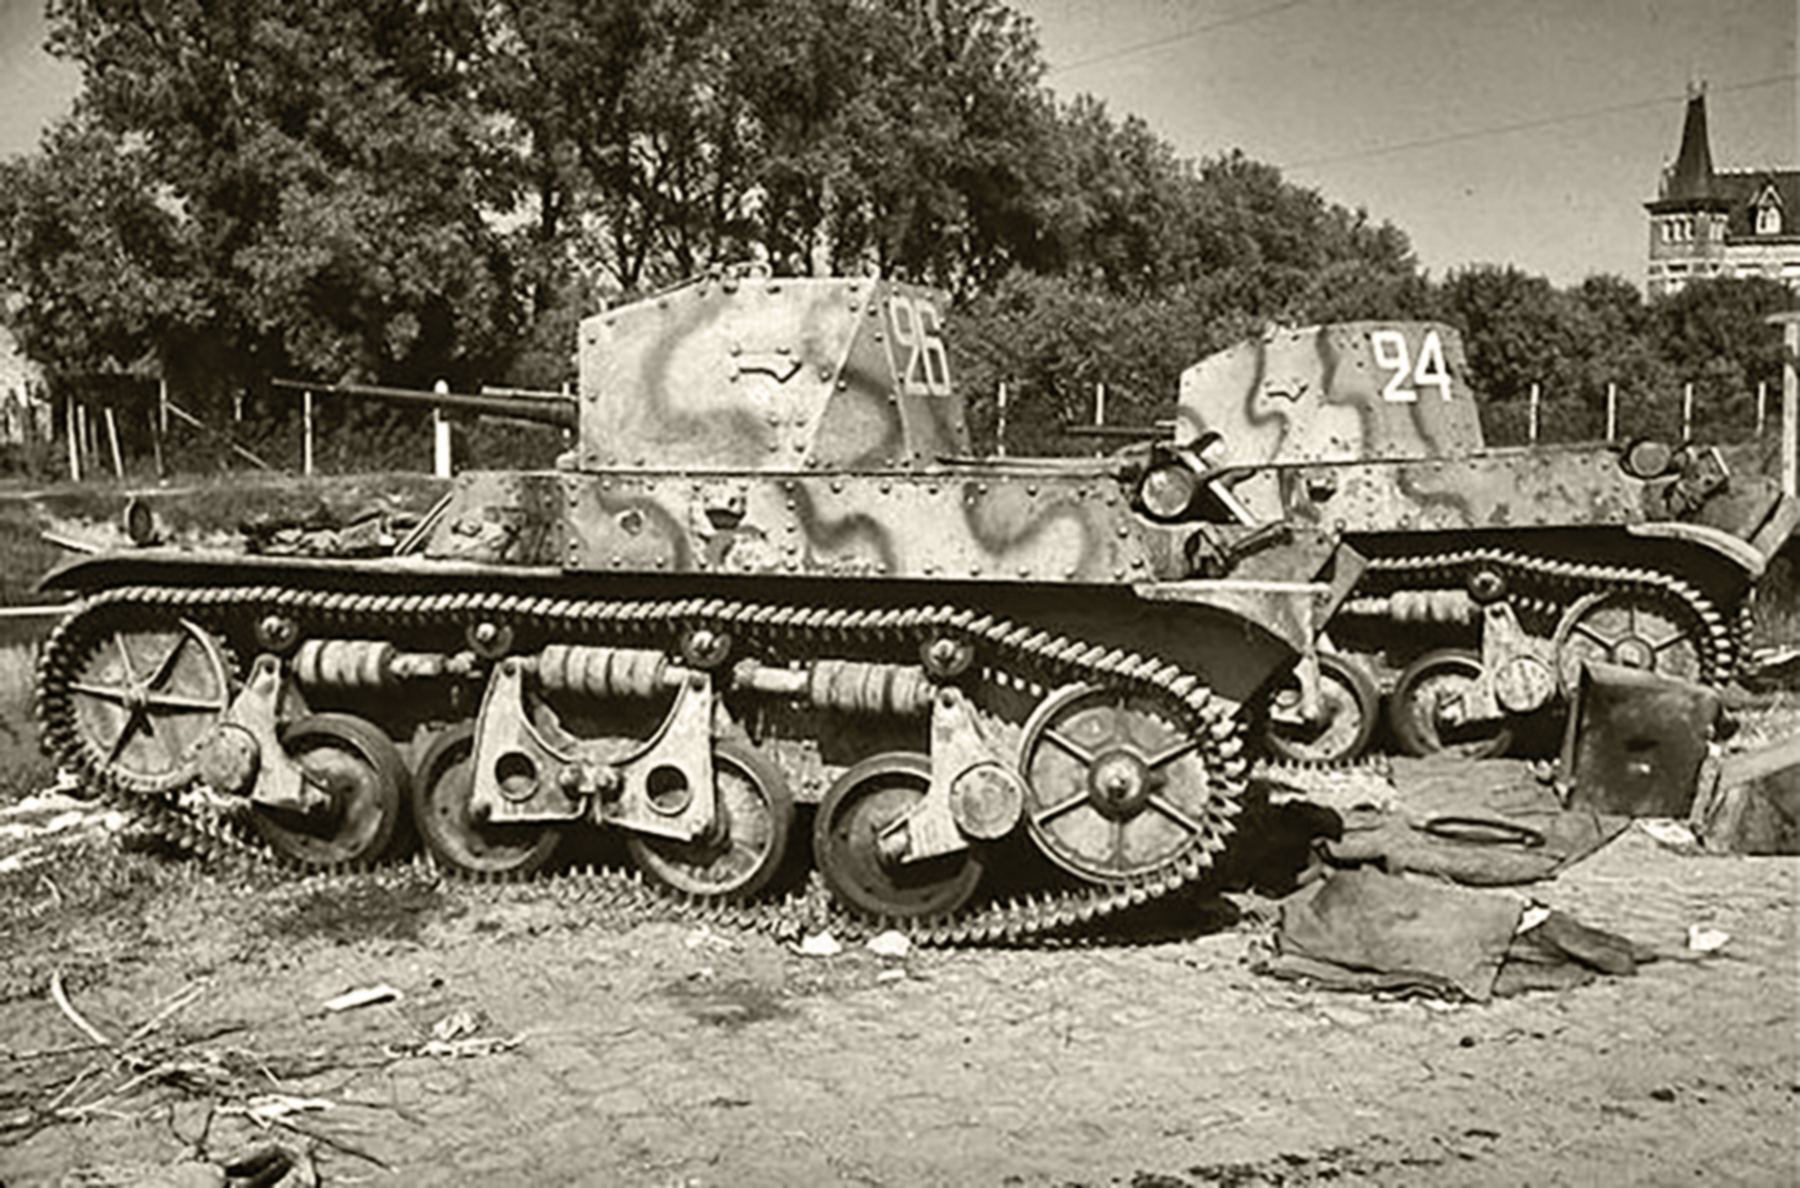 French Army Renault Char AMR 35 White 26 and 24 abandoned battle of France 1940 web 01